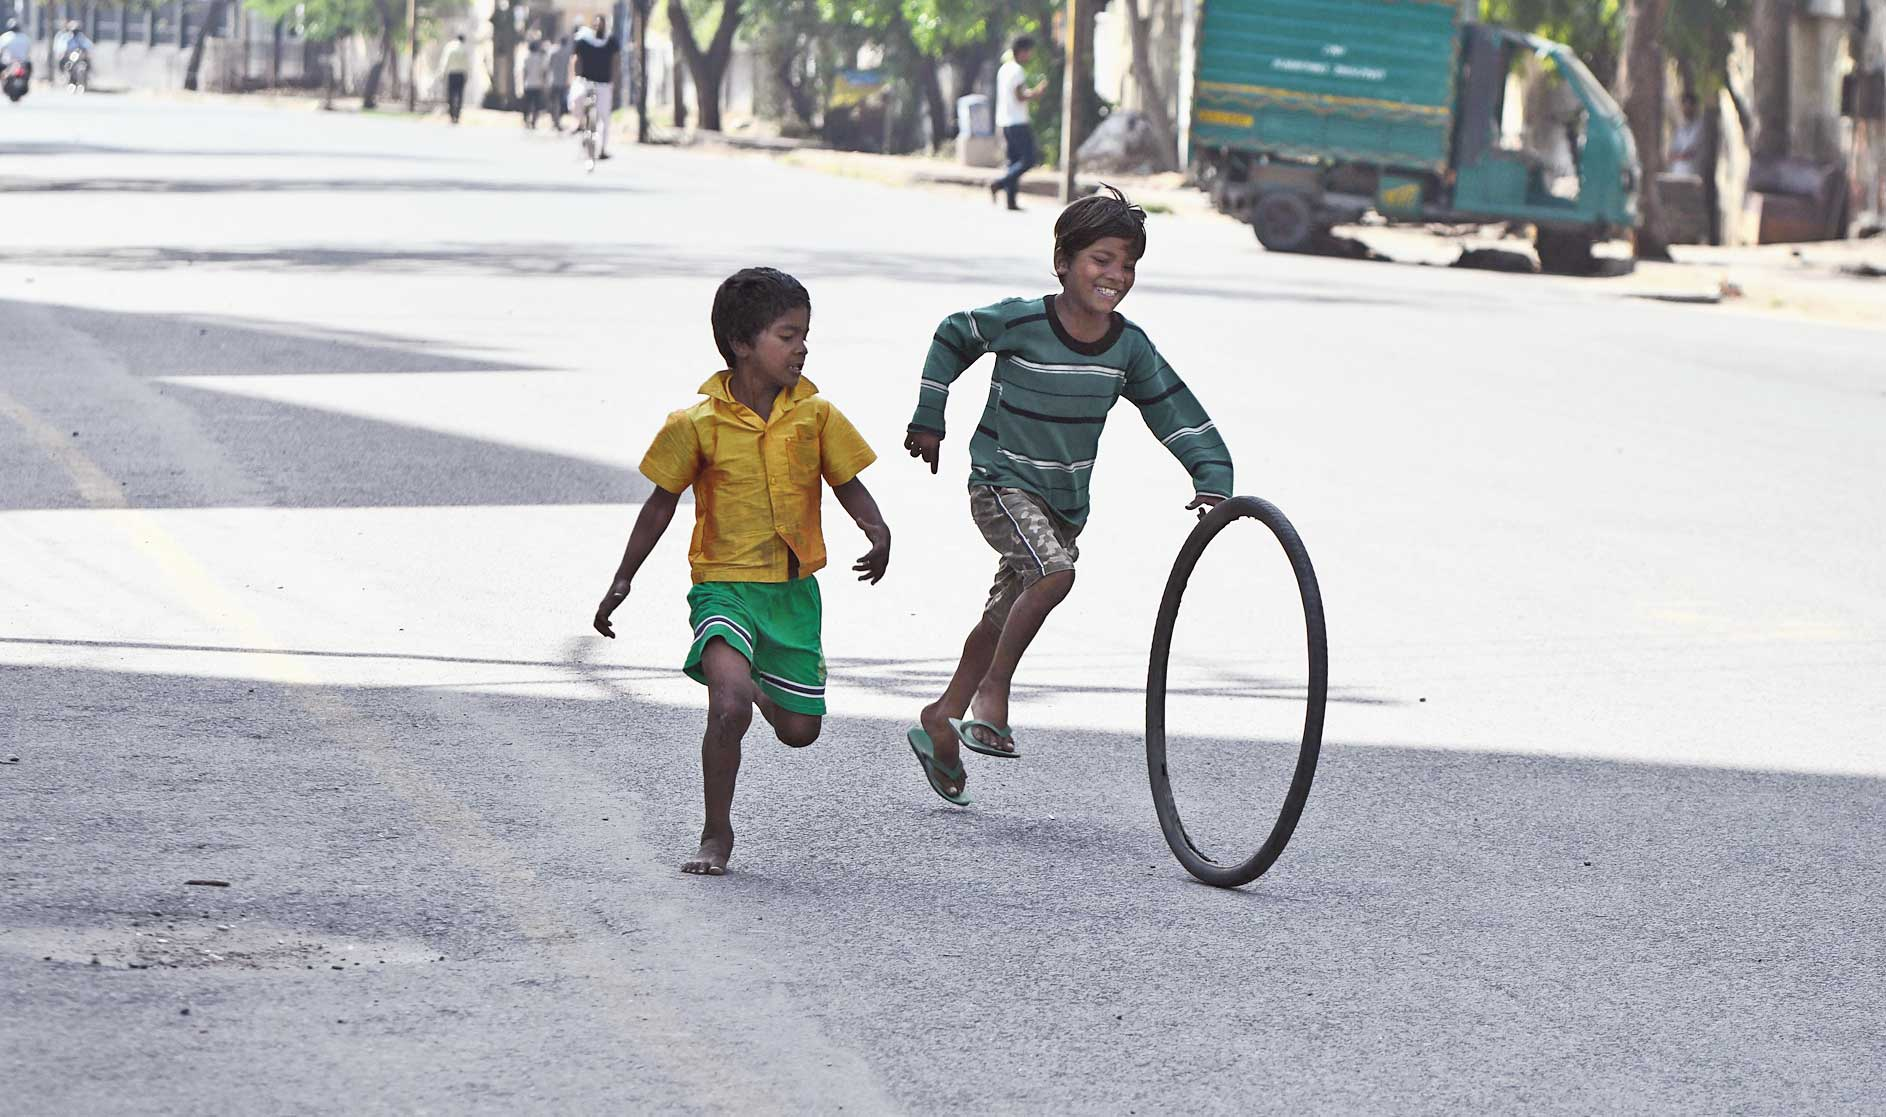 Children play on a deserted road in Noida during the lockdown on Tuesday.